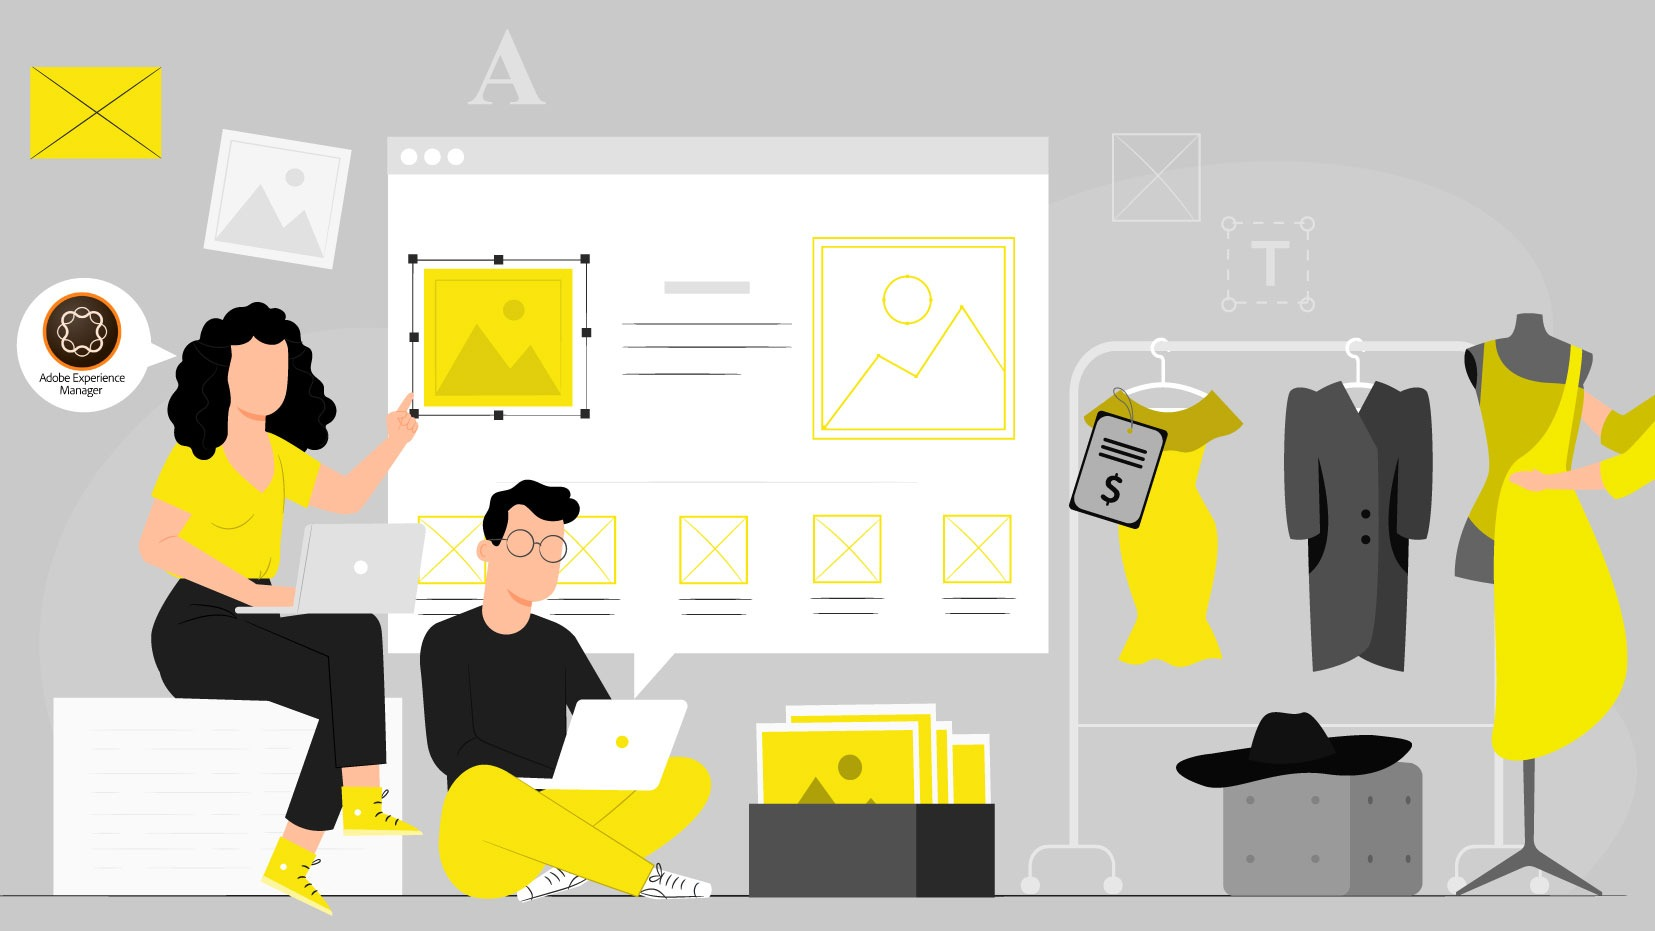 Old Navy's Modern Tech: The Clothing Retailer and Adobe Experience Manager